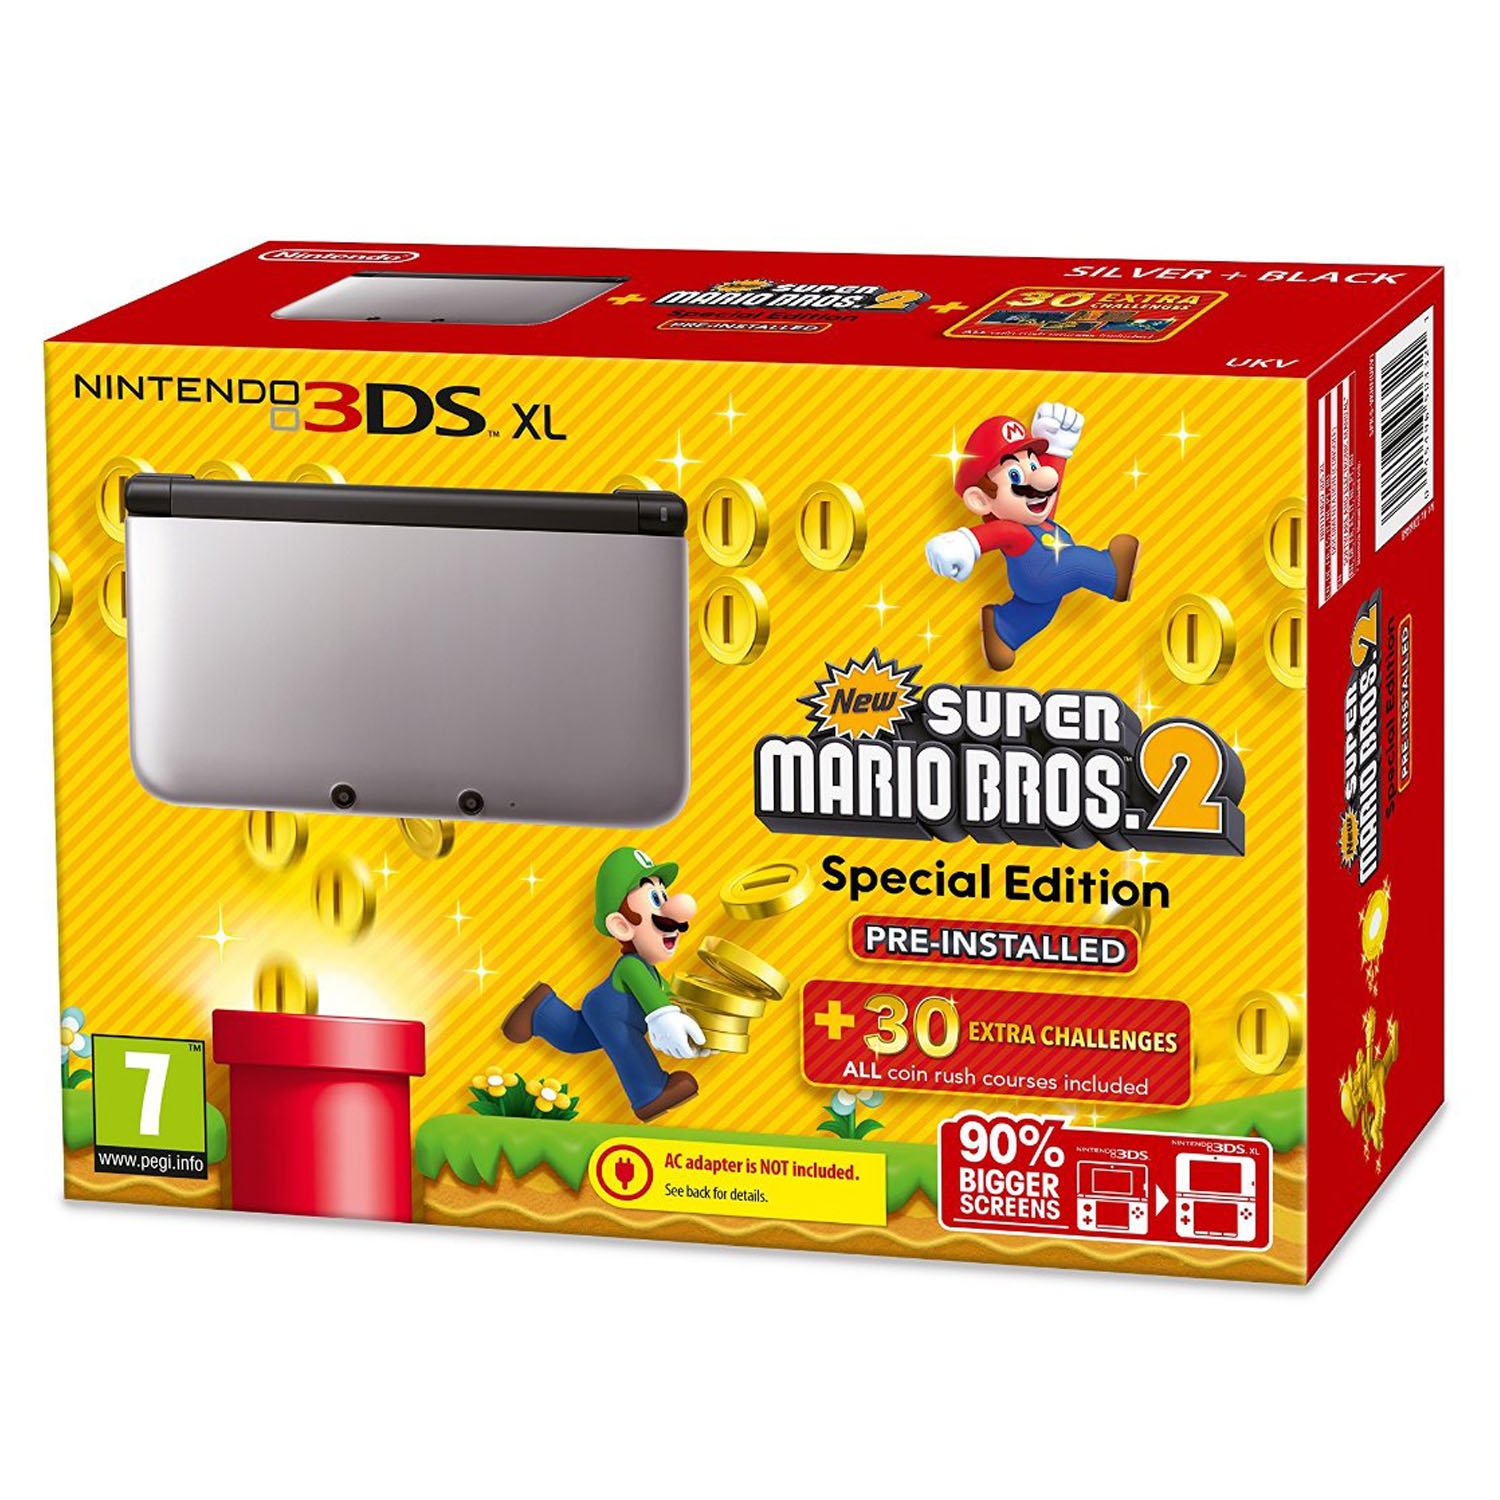 nintendo 3ds xl console limited edition with new super mario bros 2 silver ebay. Black Bedroom Furniture Sets. Home Design Ideas